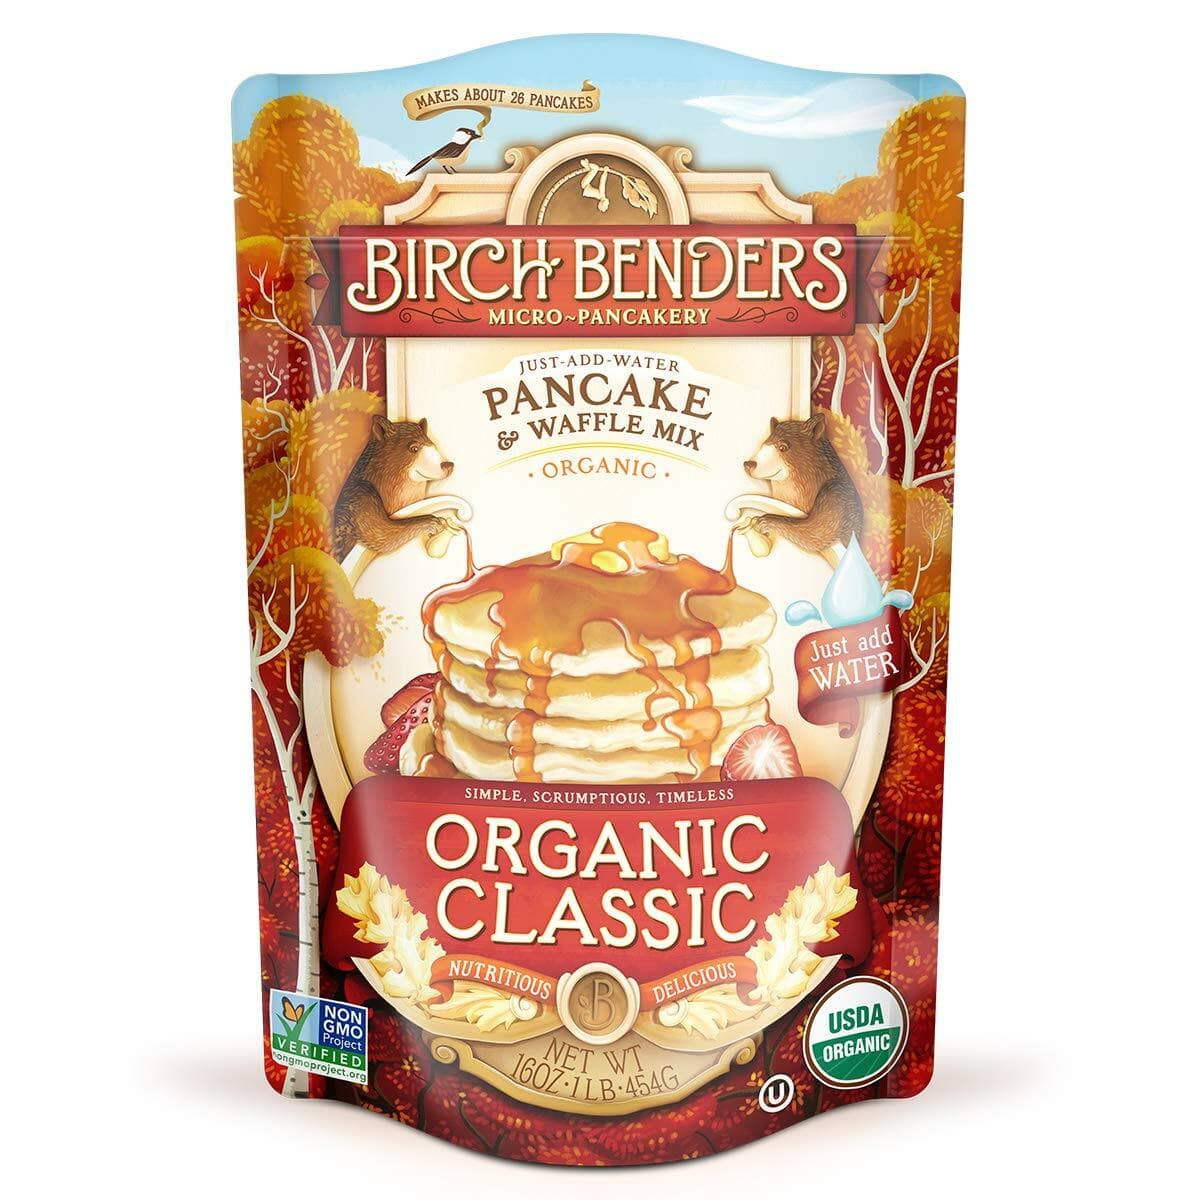 16-Oz Birch Benders Organic Classic Pancake and Waffle Mix $3.26 w/ S&S + Free Shipping w/ Prime or on $25+